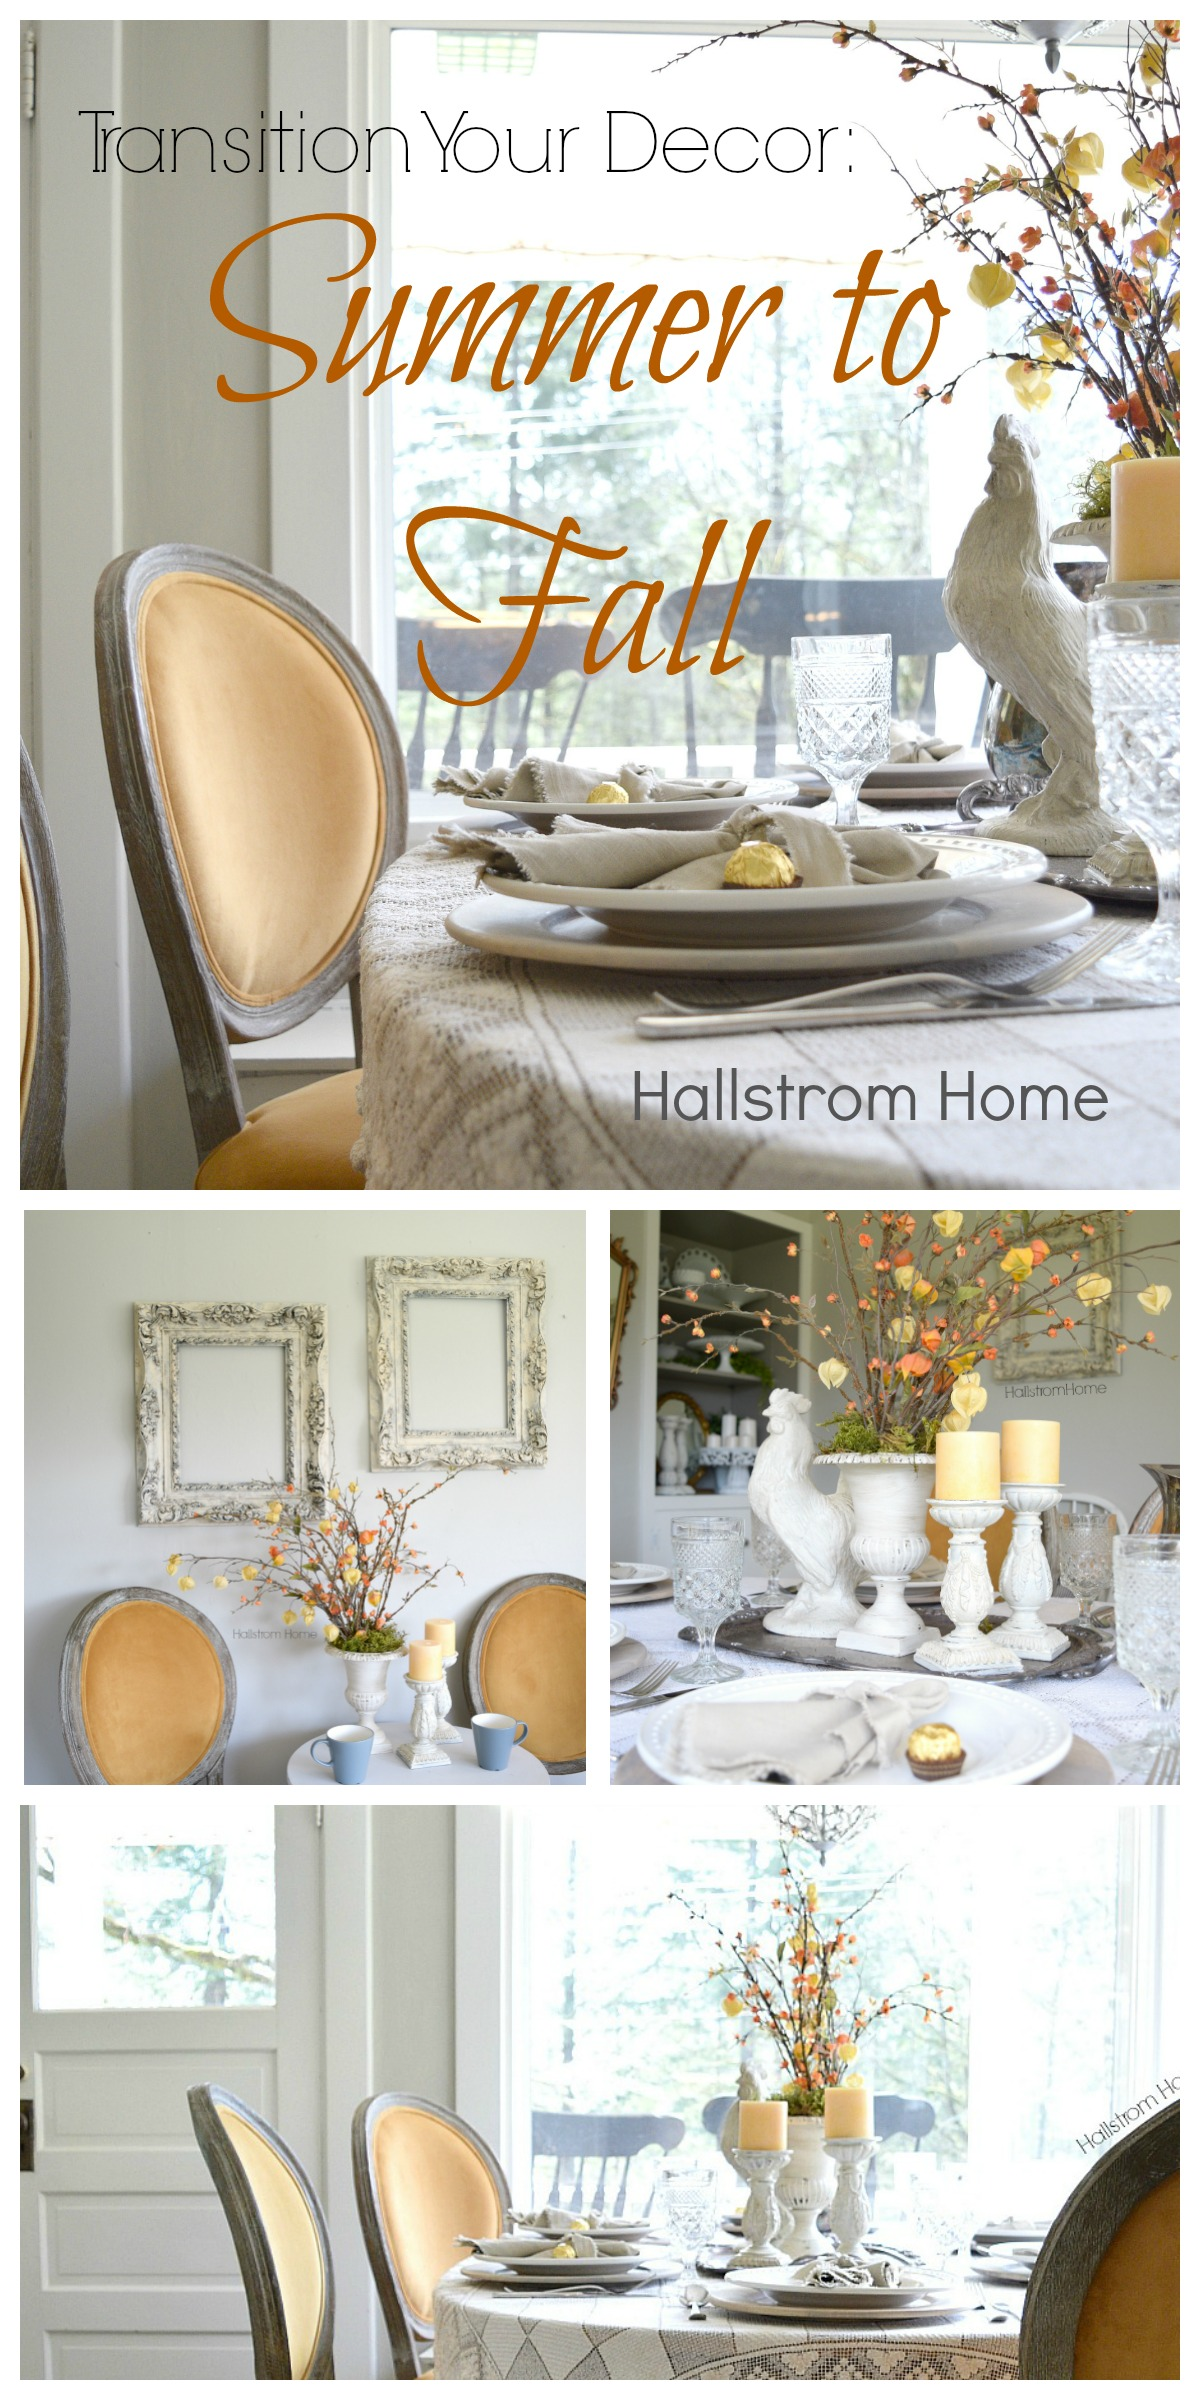 Transition Your Decor From Summer to Fall by Hallstrom Home